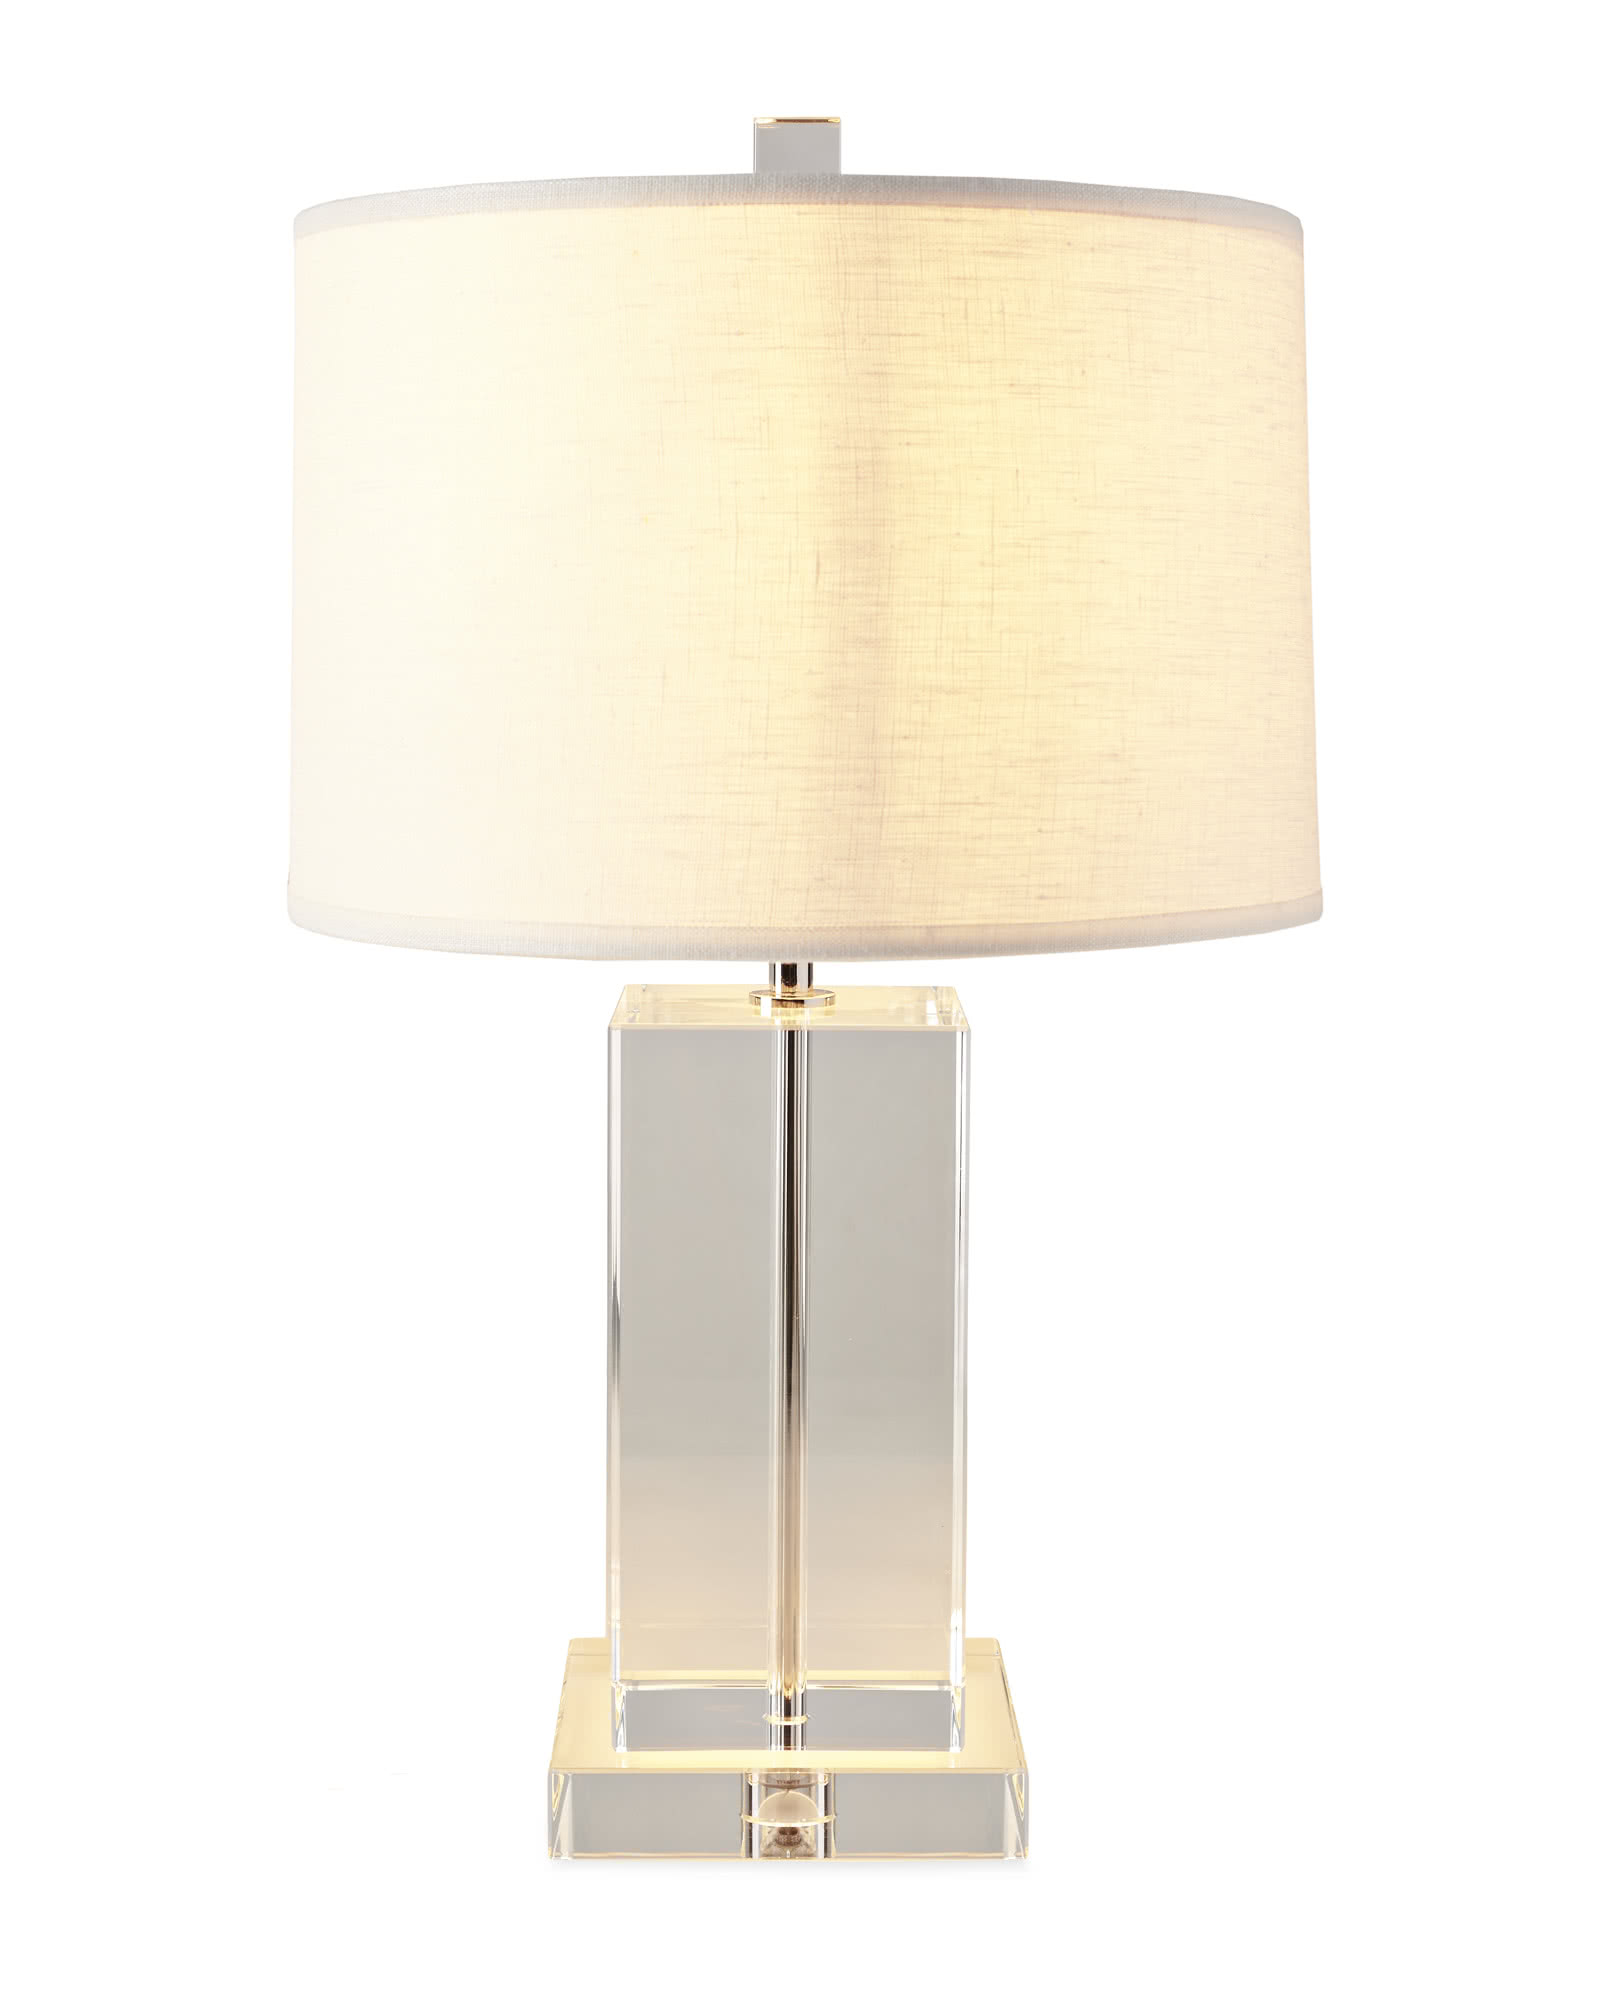 Darby Crystal Table Lamp